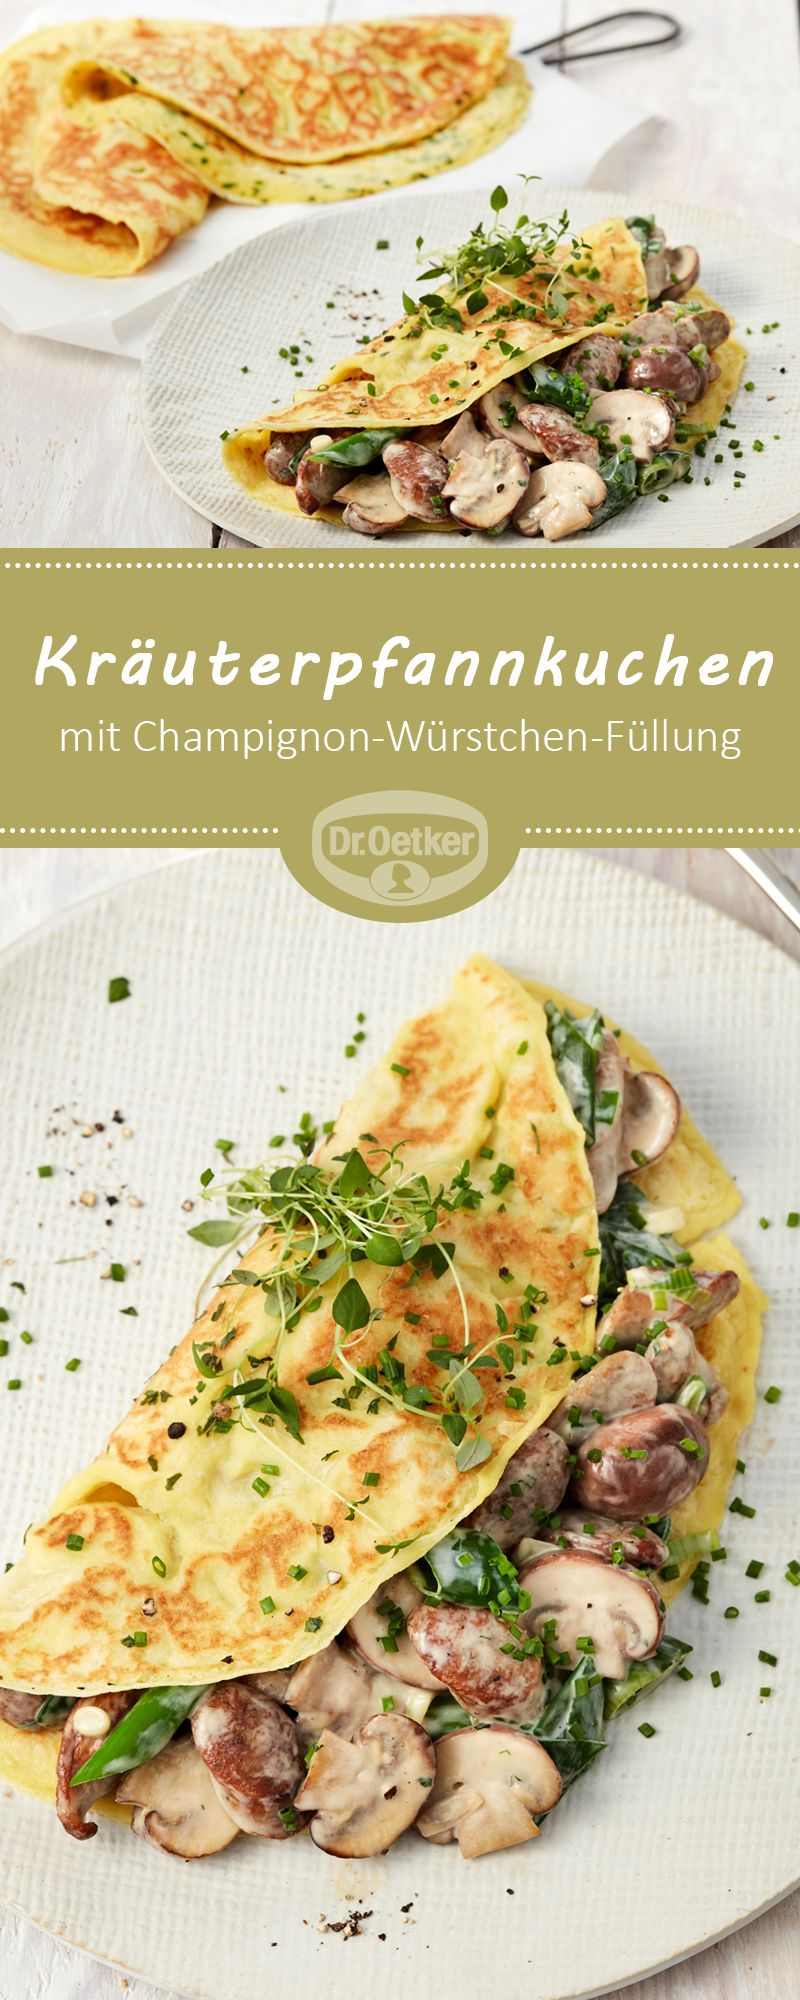 Photo of Herbal pancakes with mushroom and sausage filling